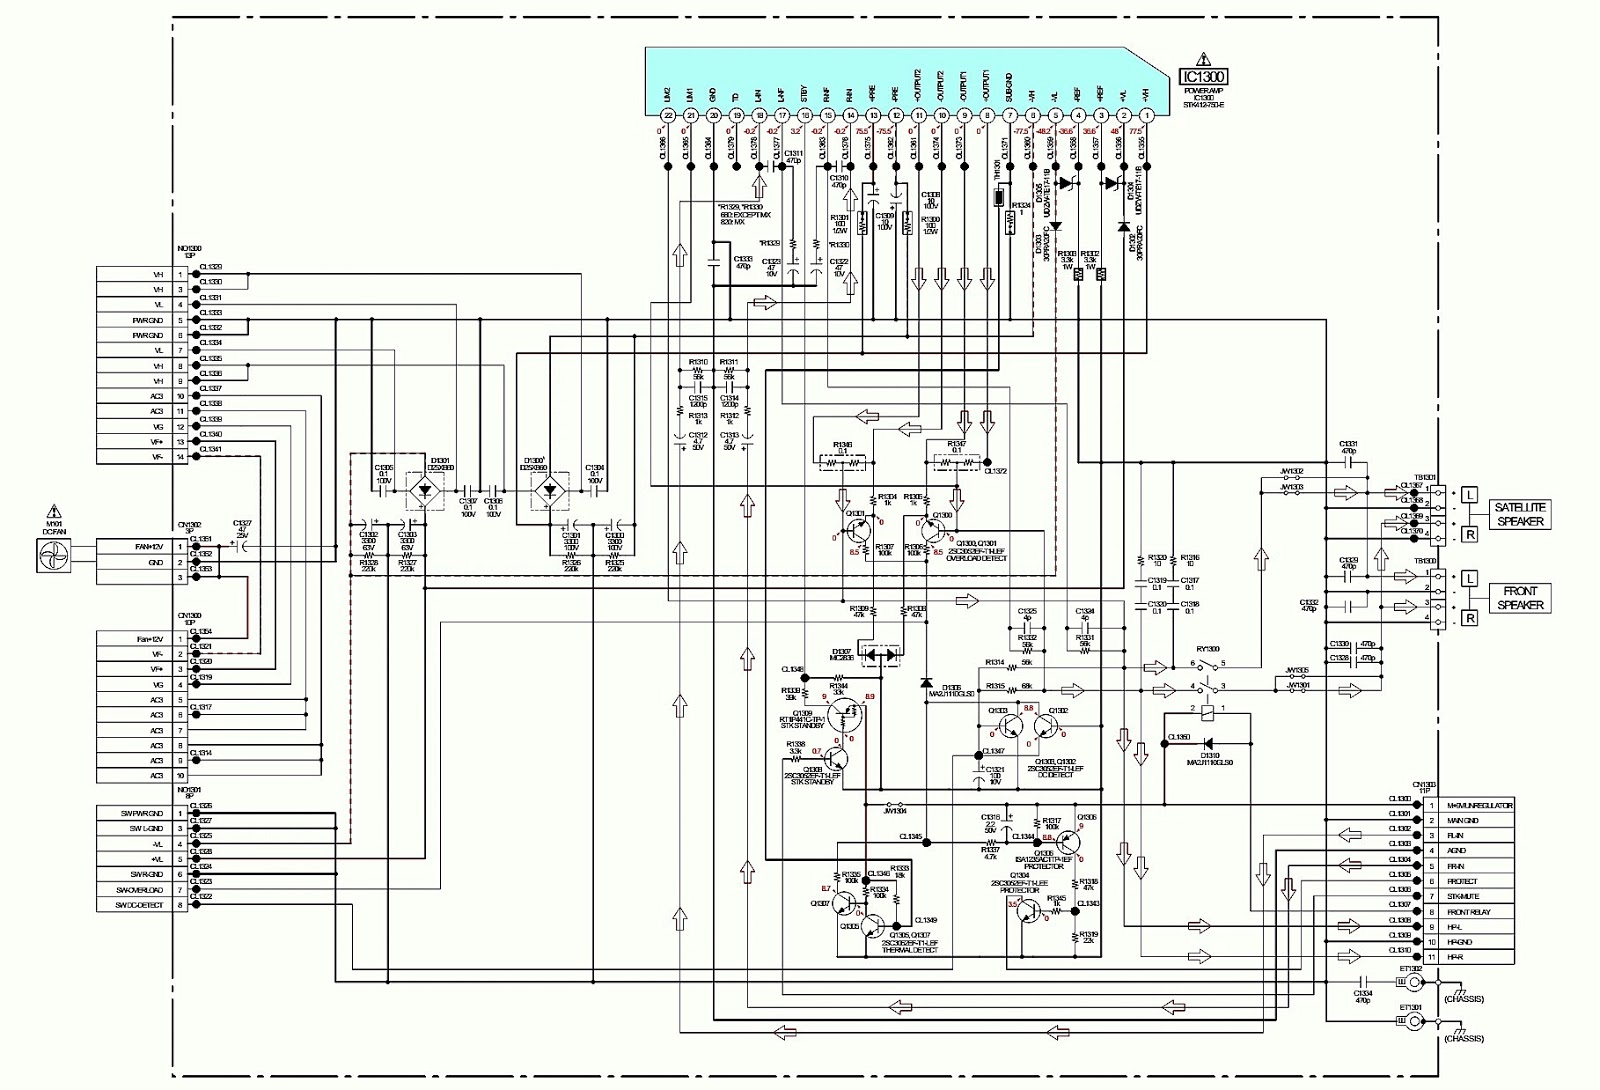 Sony Hcd Gtr88 Power Amplifier Circuit Diagram Stk412 750 E